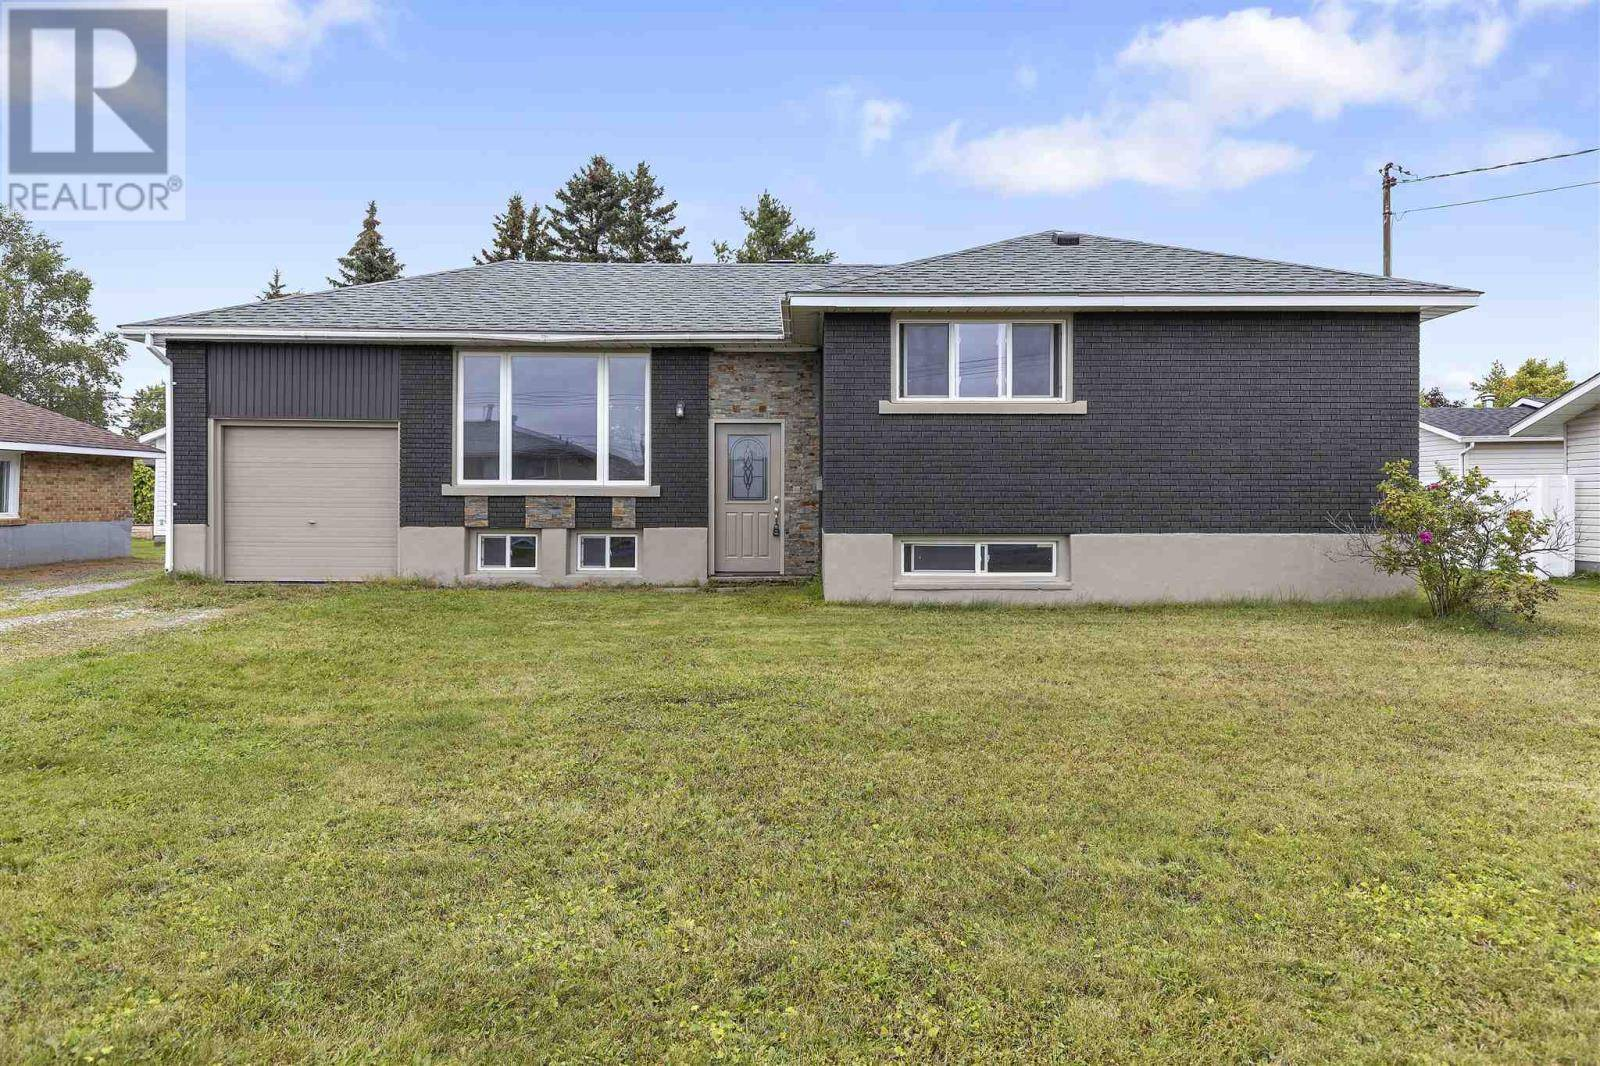 House for sale at 320 Sydenham Rd Sault Ste. Marie Ontario - MLS: SM126537